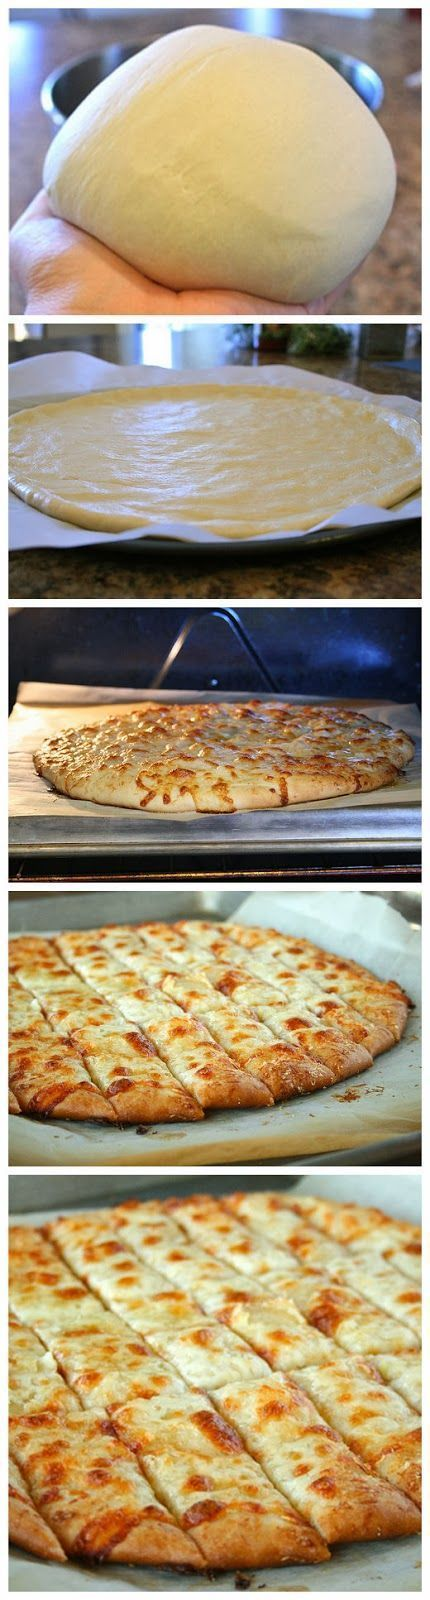 Fail-Proof Pizza Dough and Cheesy Garlic Bread Sticks - Best Healthy Italian Recipes for Dinner #easy #recipes